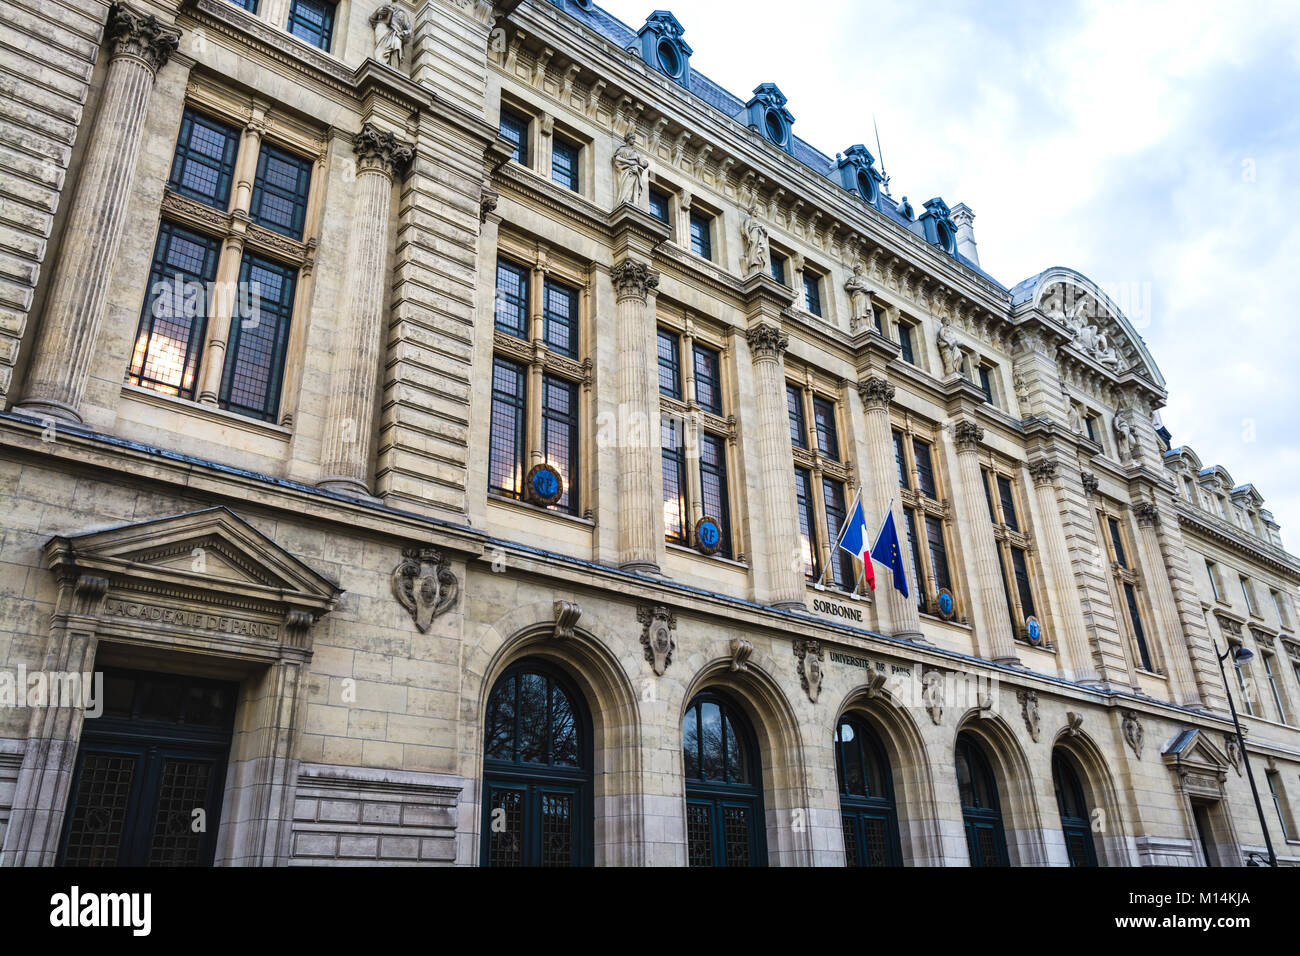 Paris, France - December 9, 2017: Sorbonne University building in the Latin Quarter, the historical house of the - Stock Image